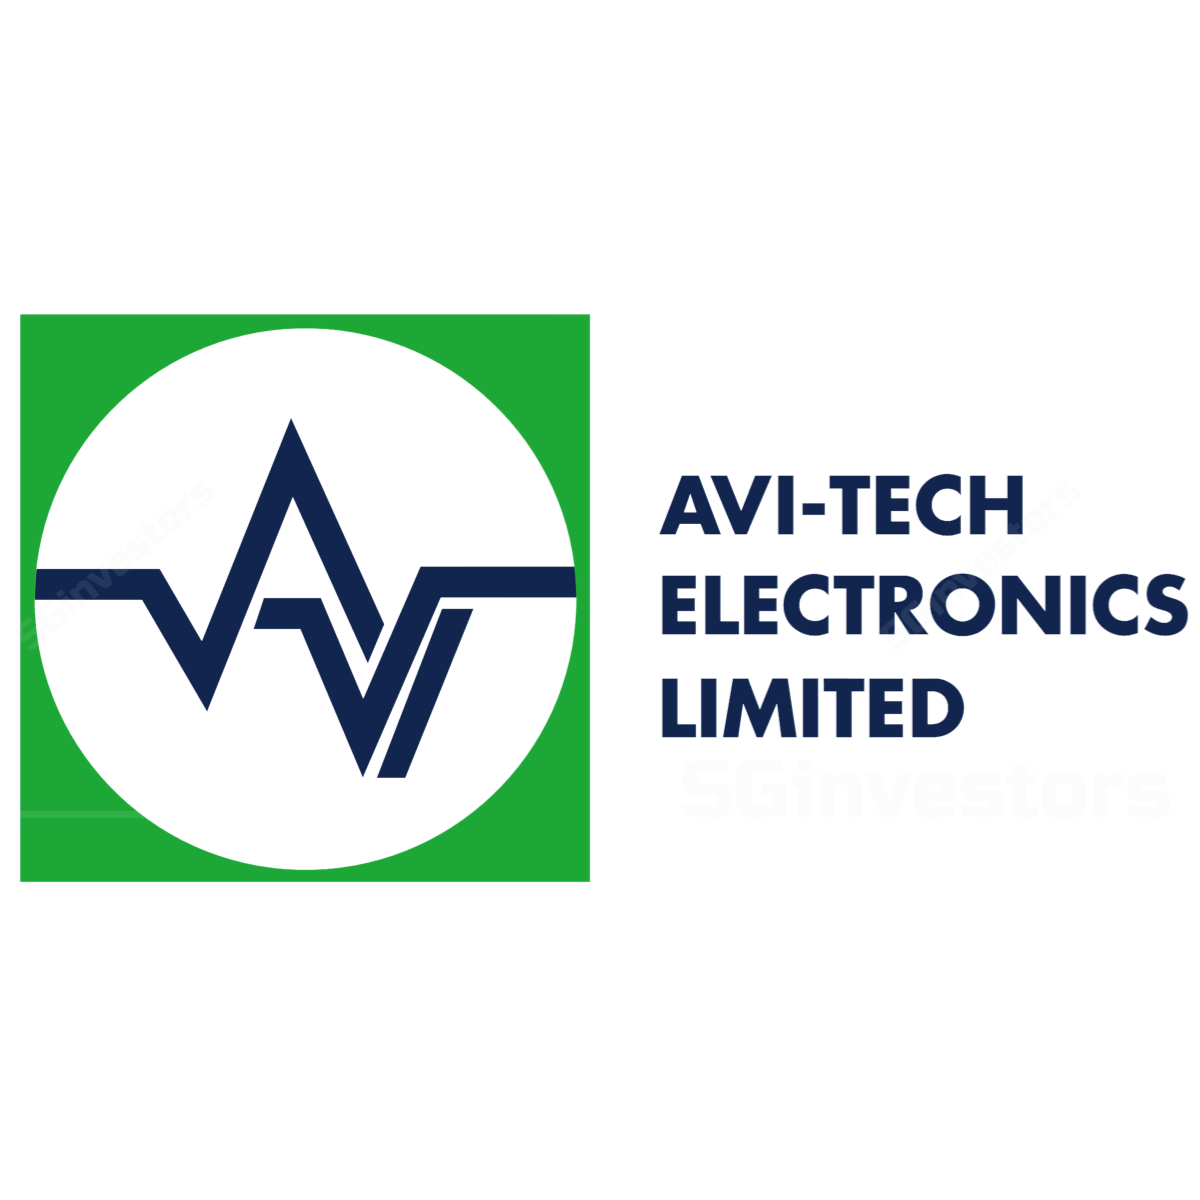 Avi-Tech Electronics - RHB Invest 2017-12-19: Long-Term Demand Intact